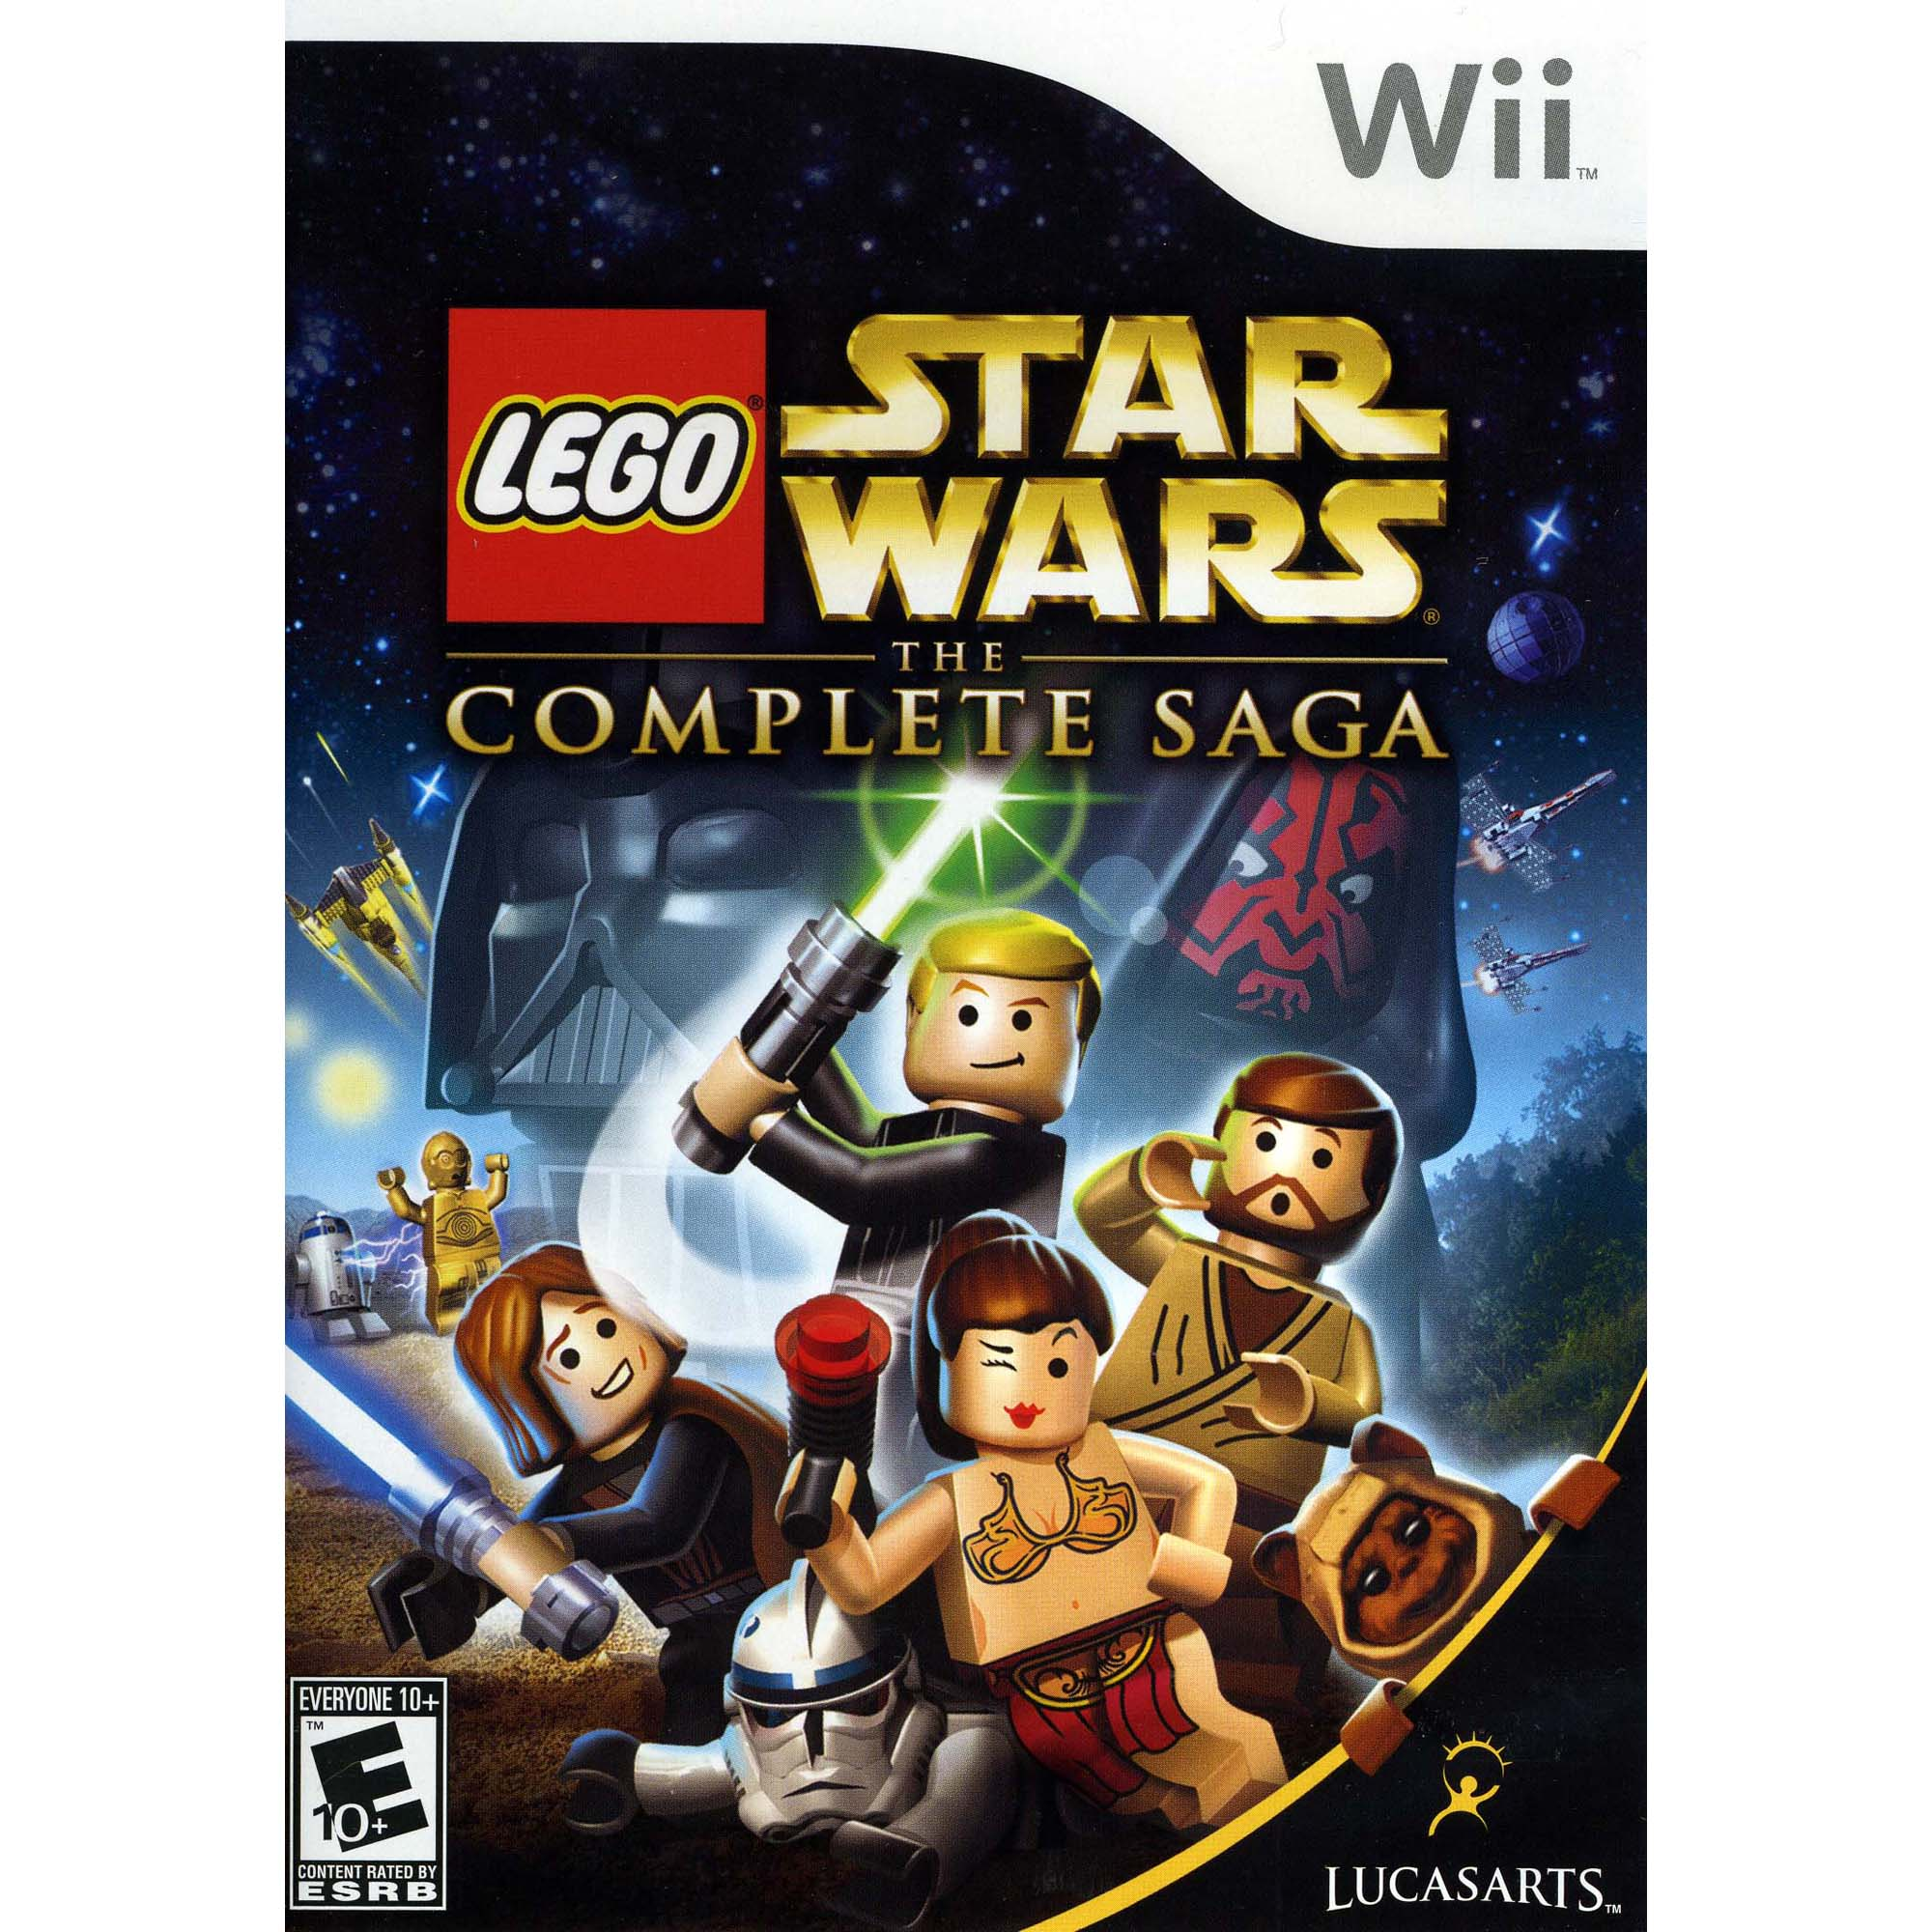 Lego Star Wars: The Complete Saga (Nintendo Wii) by Disney